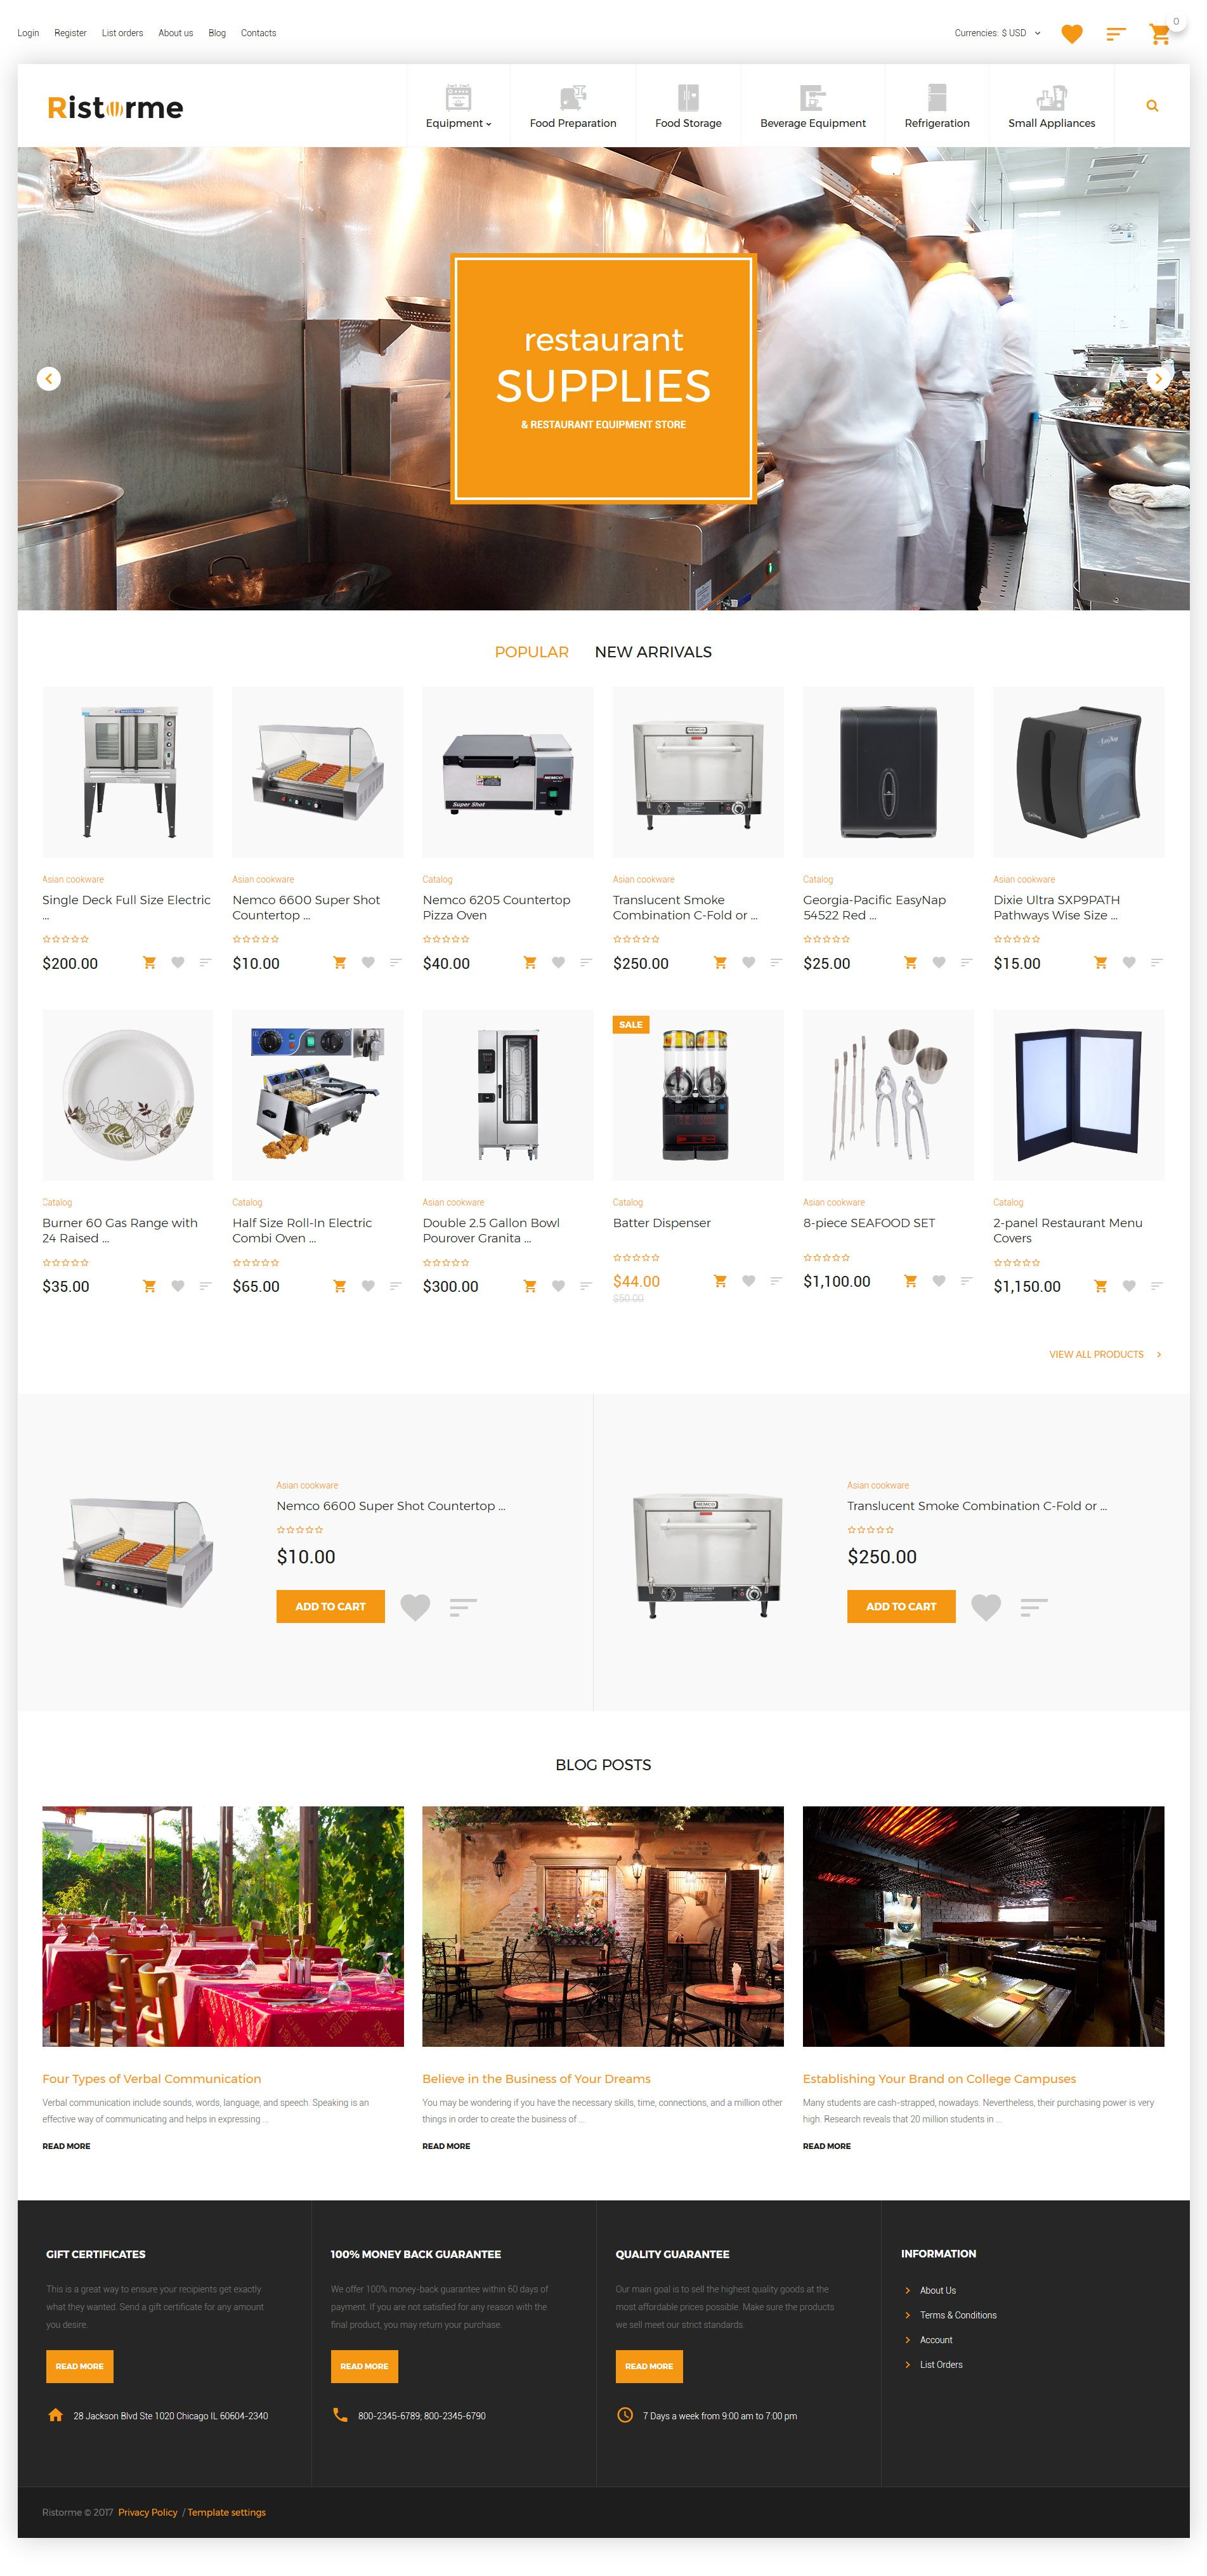 """Restaurant Supplies"" VirtueMart Template №63373"